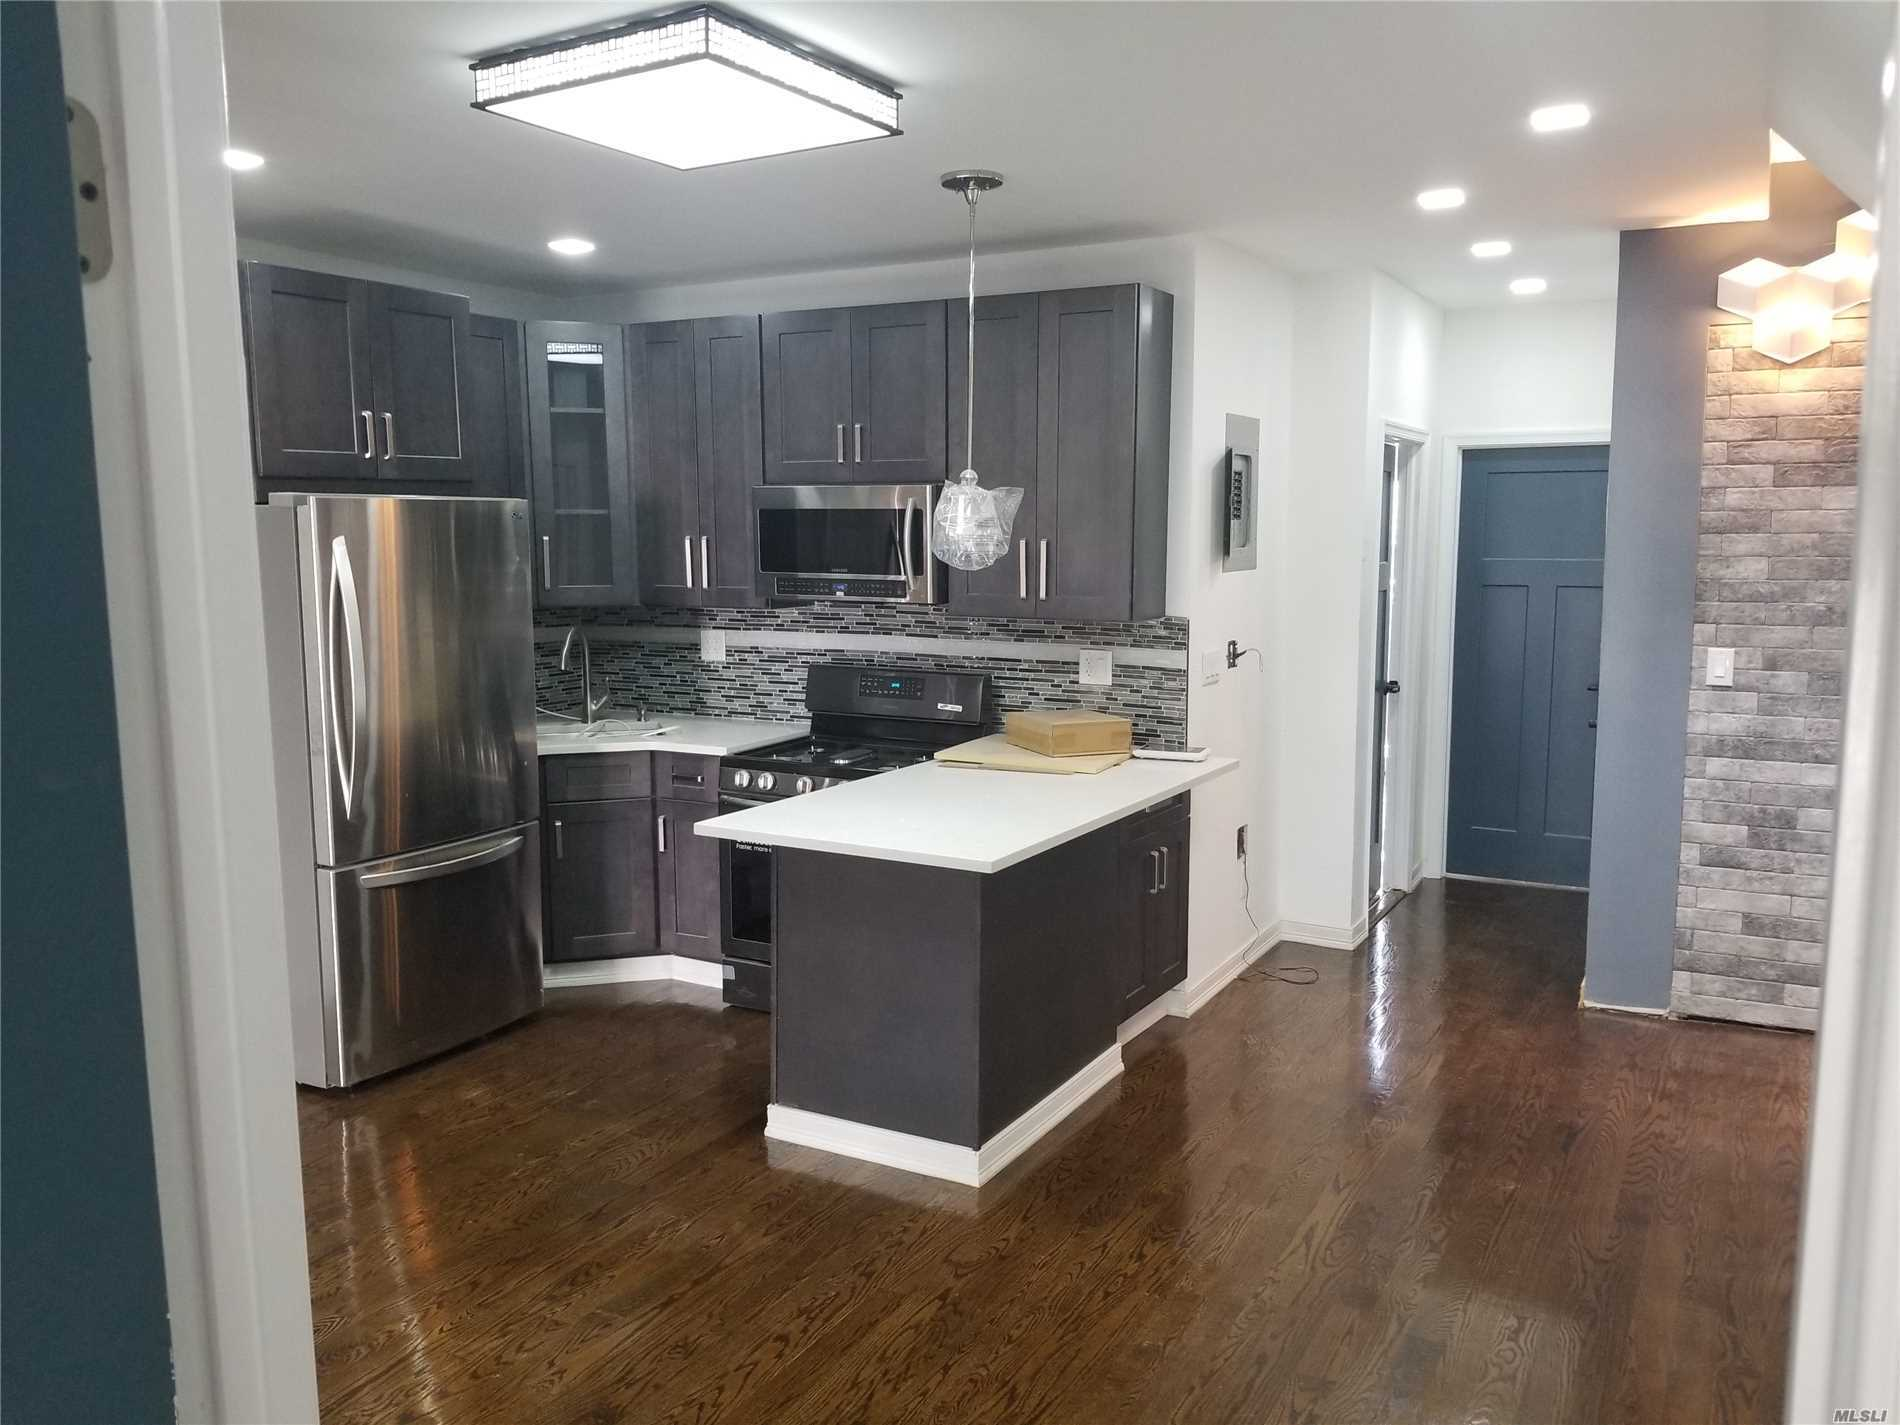 Just Renovated, 3 Brs Could Be 4 Brs, 2 Baths And Balcony. Heat & Gas Included, Walking Distance To Subway And Other Public Transportation, A Must See!!!Park,